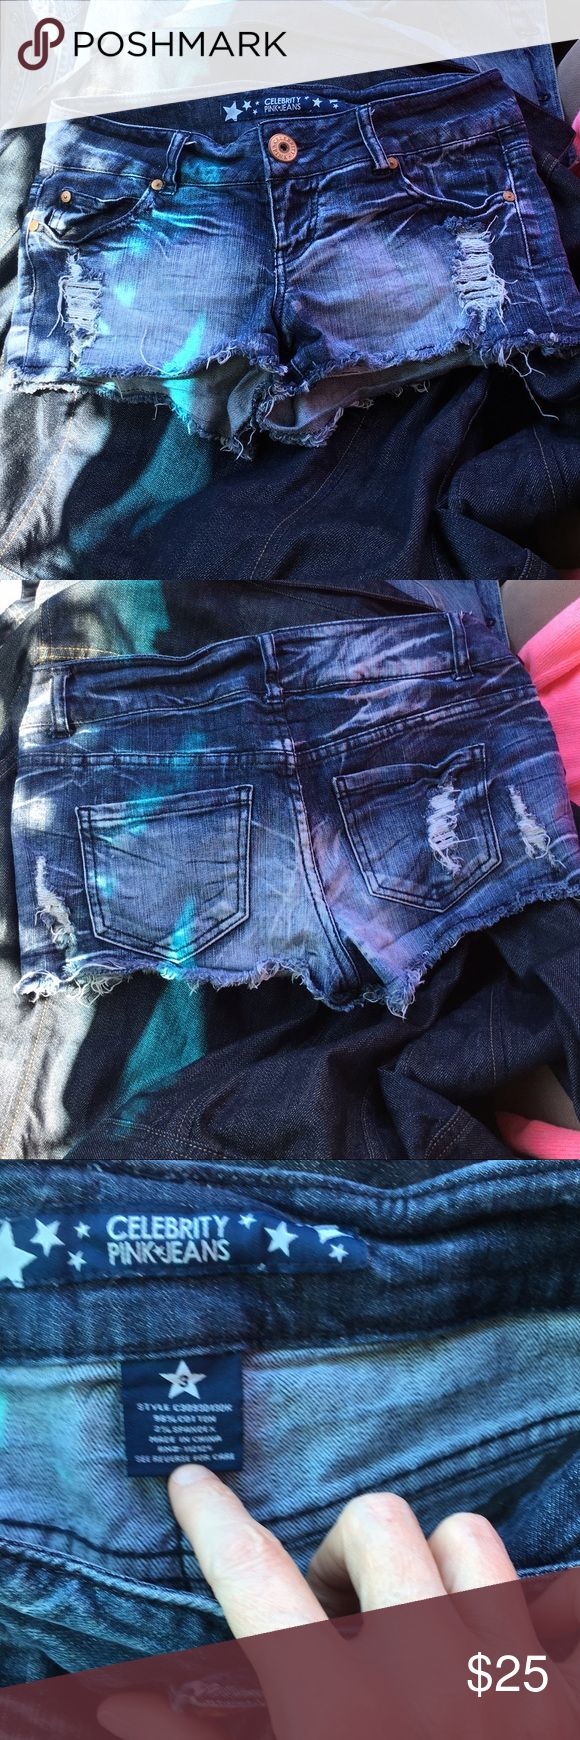 Celebrity Pink Shorts 3 NWOT Distressed and So Soft and Worn and Sexy well everything you want in shorts! That about says it all girls! Might want a Grab these!! 😁 Celebrity Pink Shorts